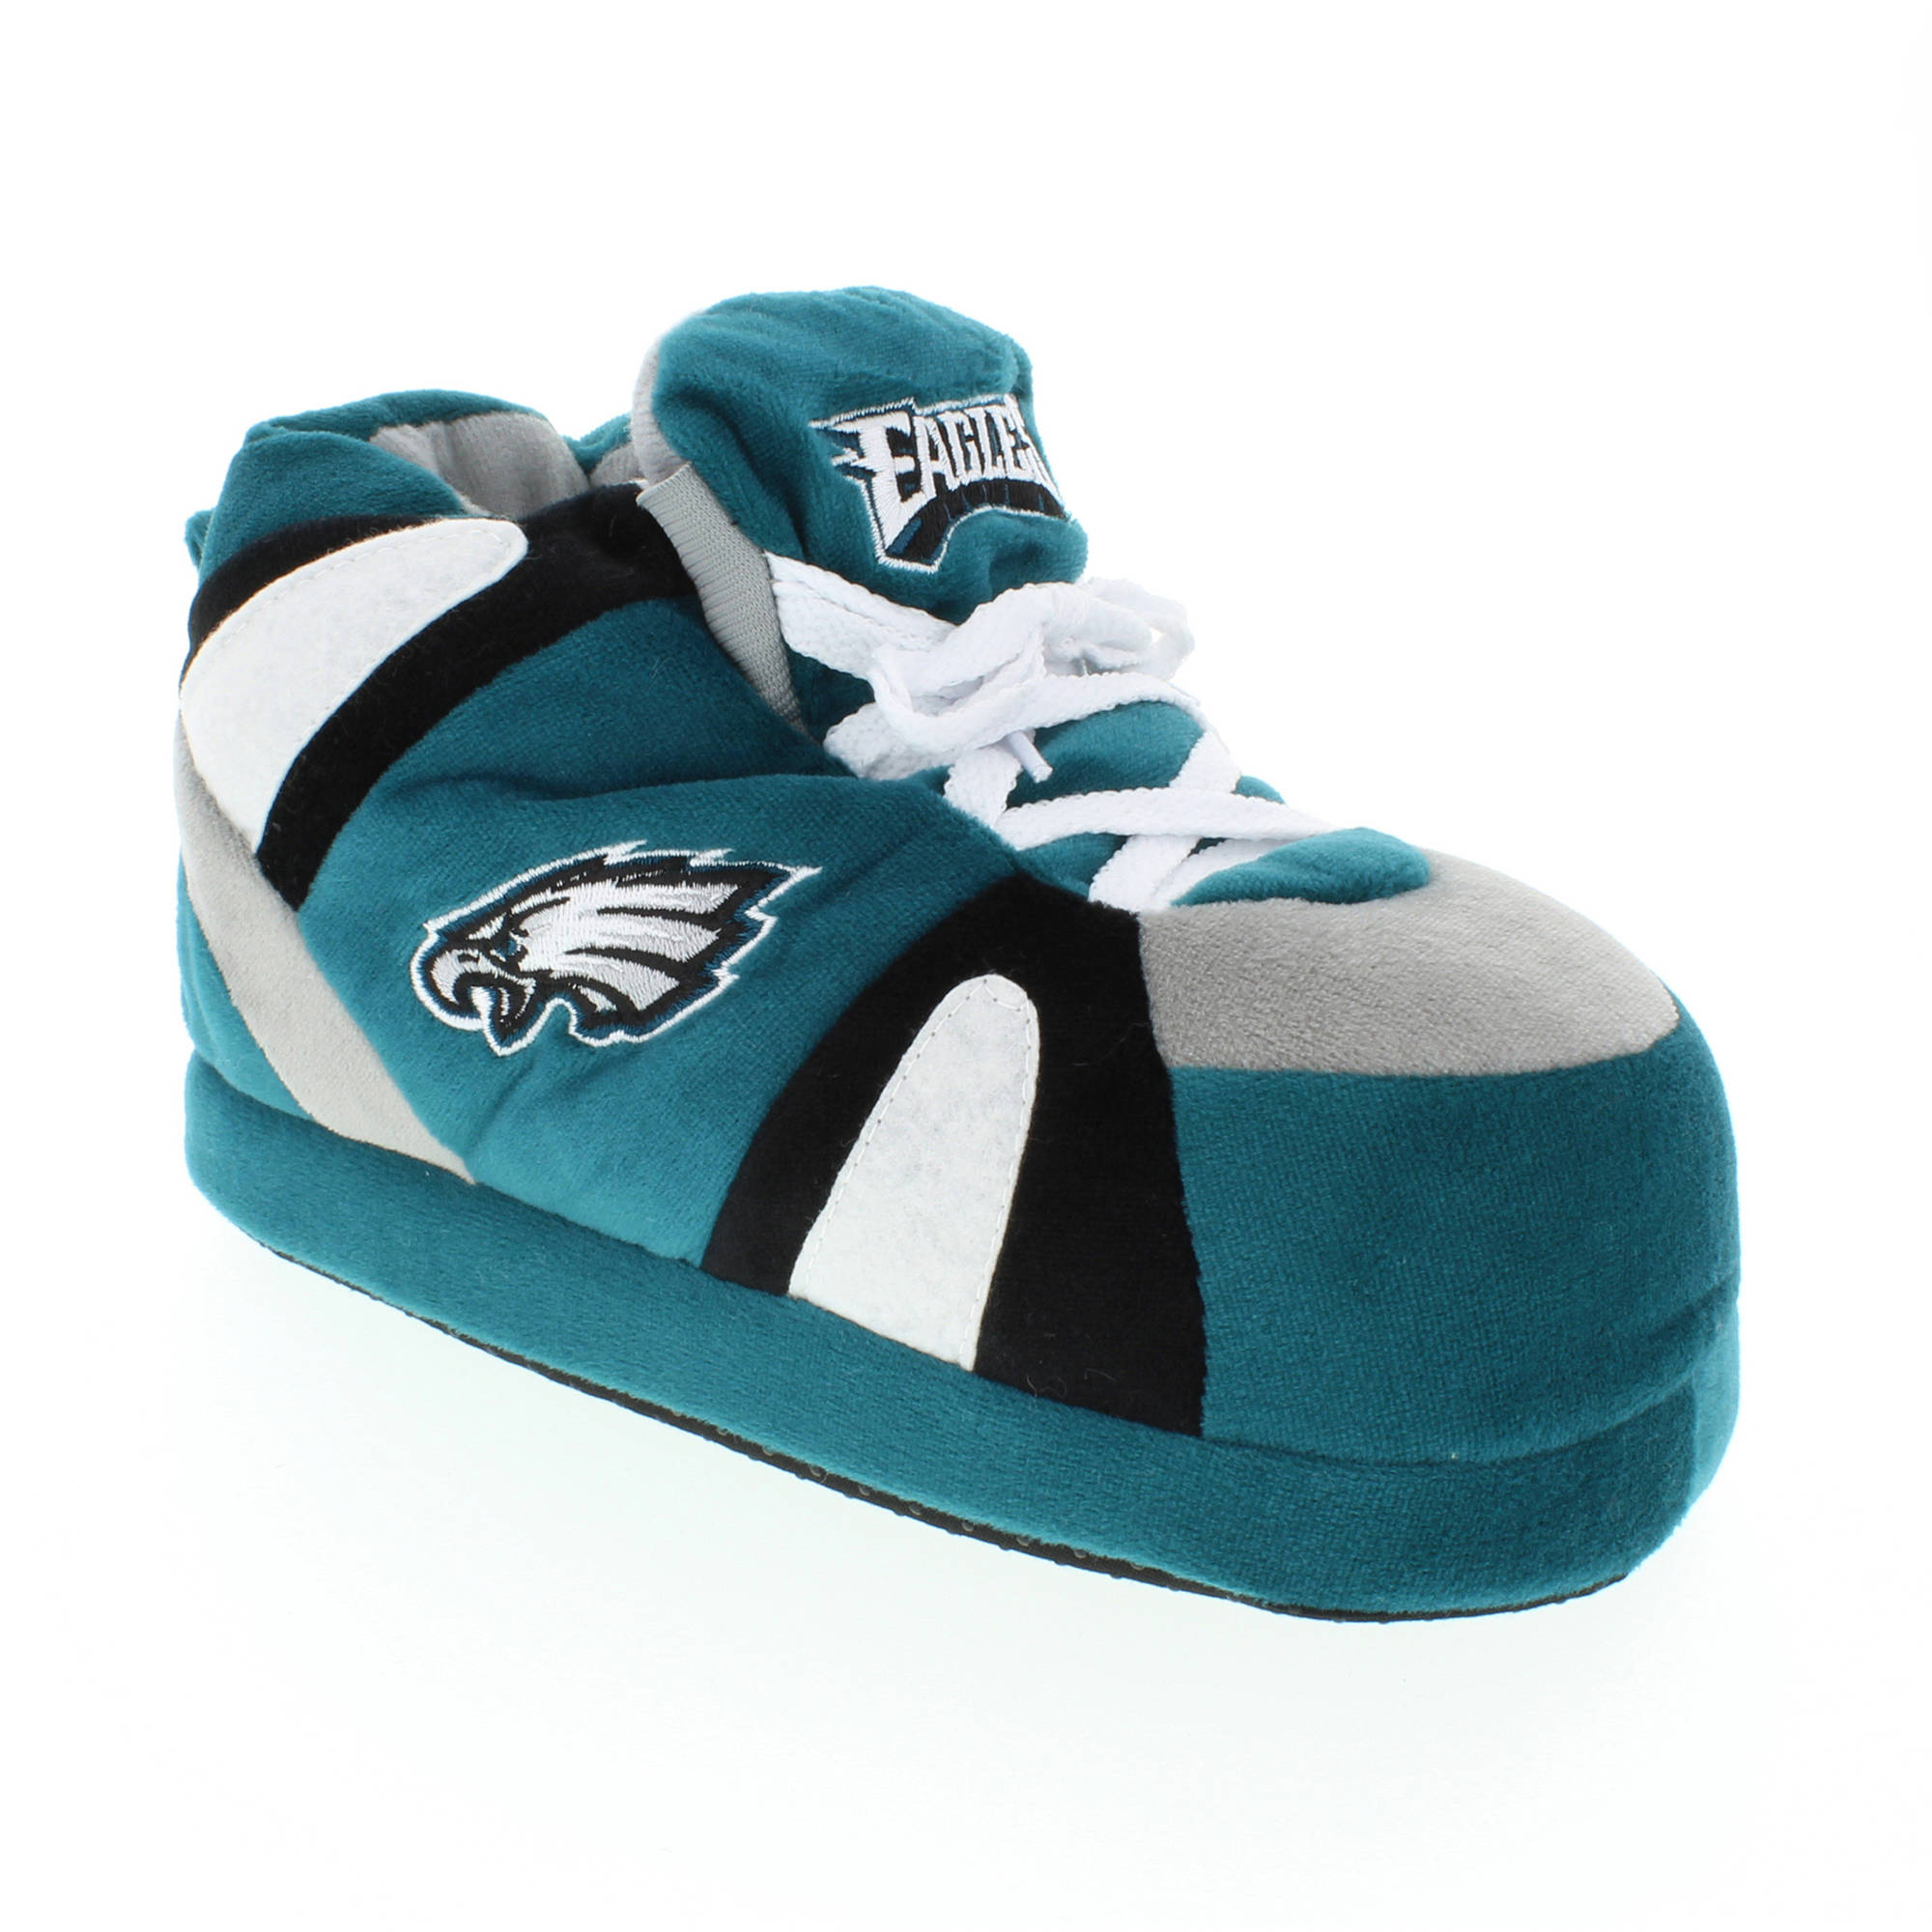 Comfy Feet - NFL Philadelphia Eagles Slipper